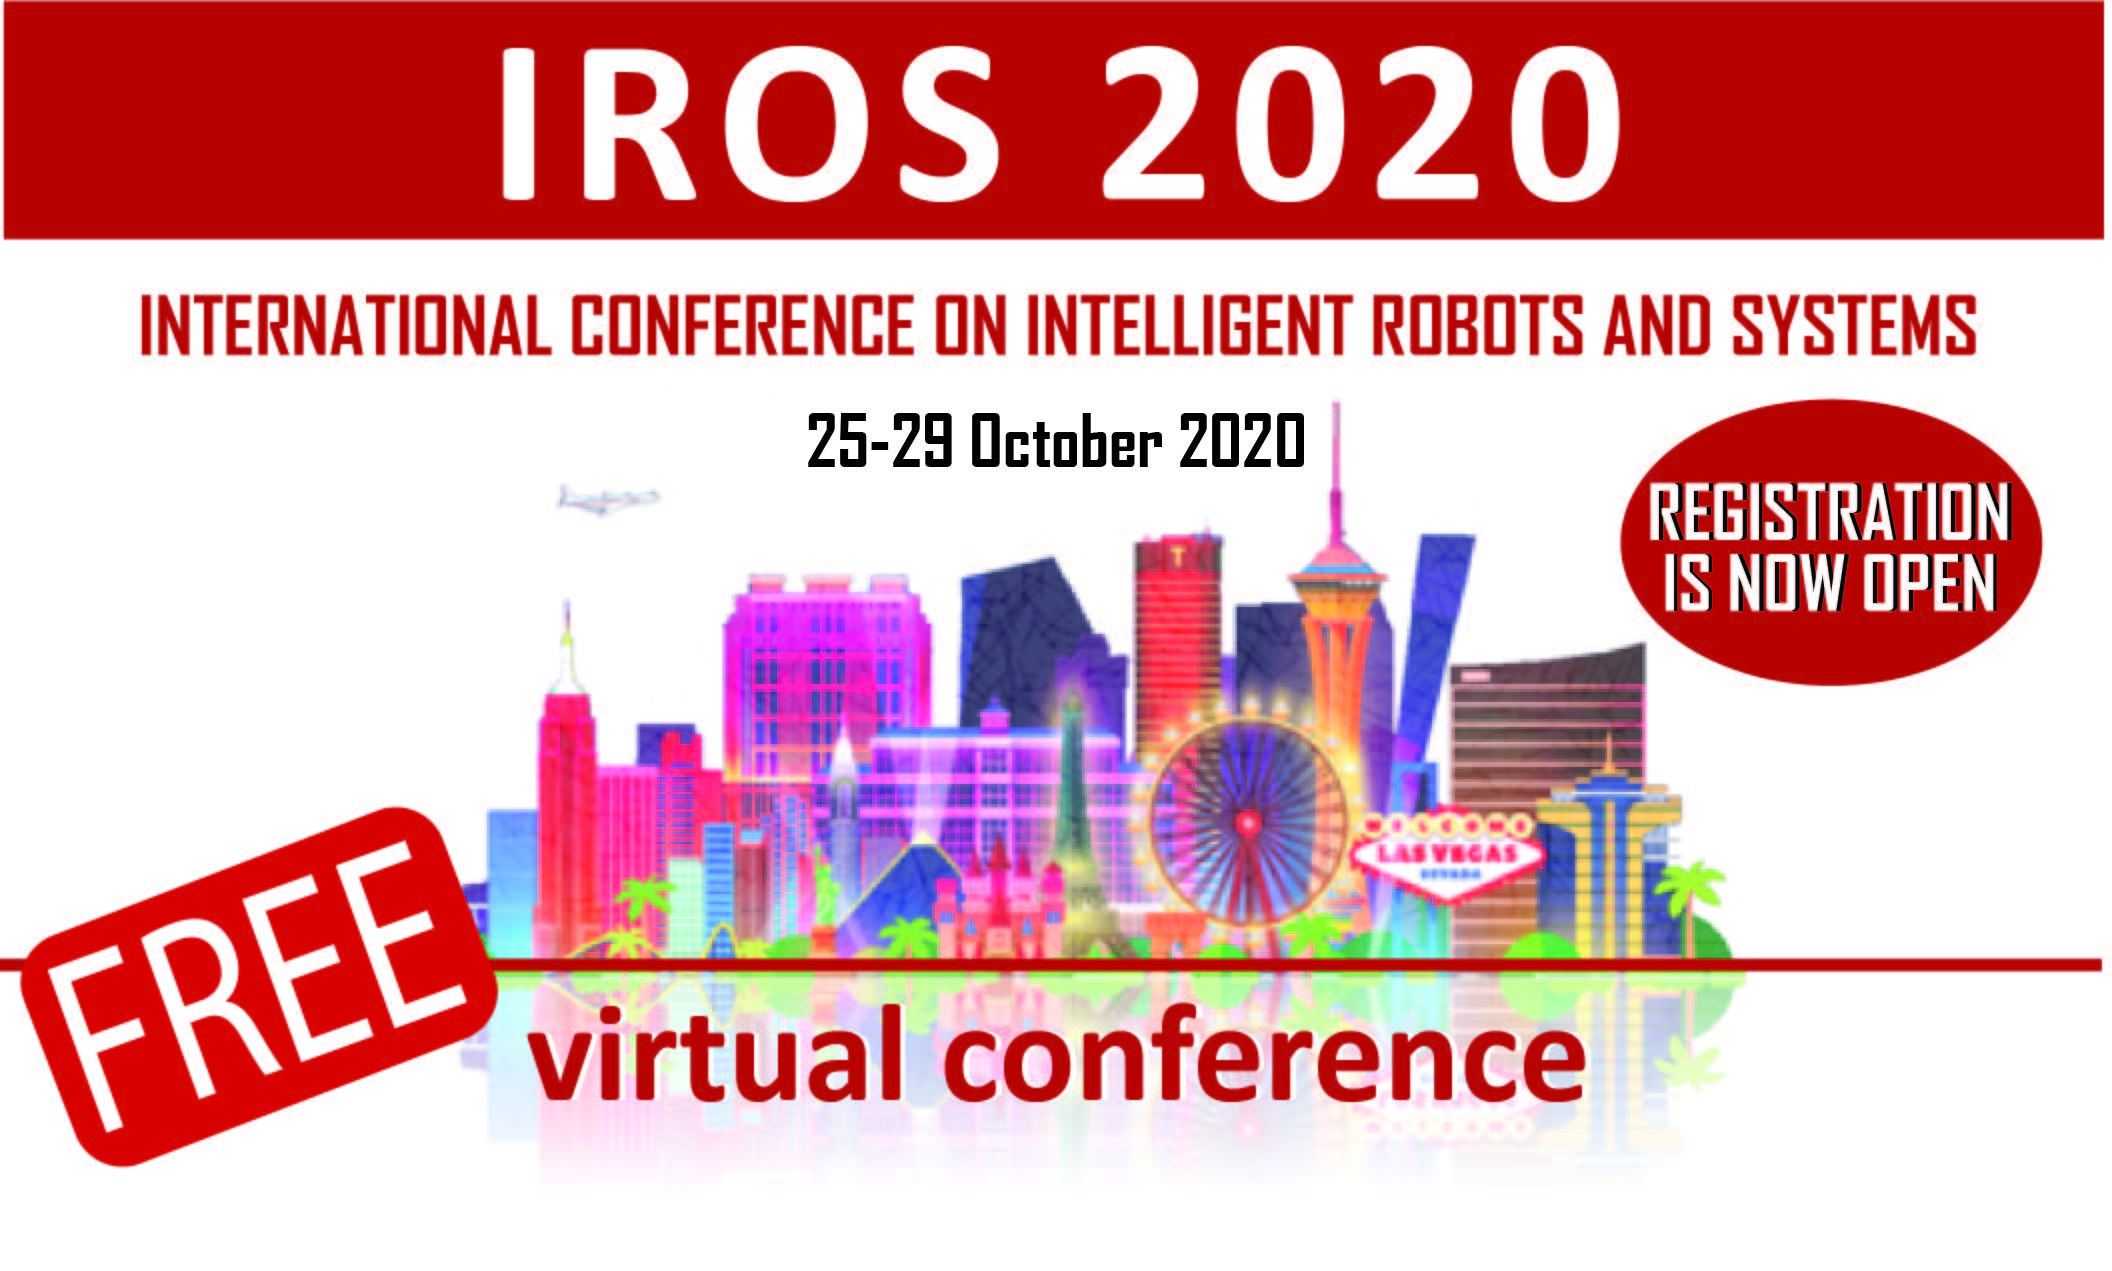 iros 2020 banner updated free